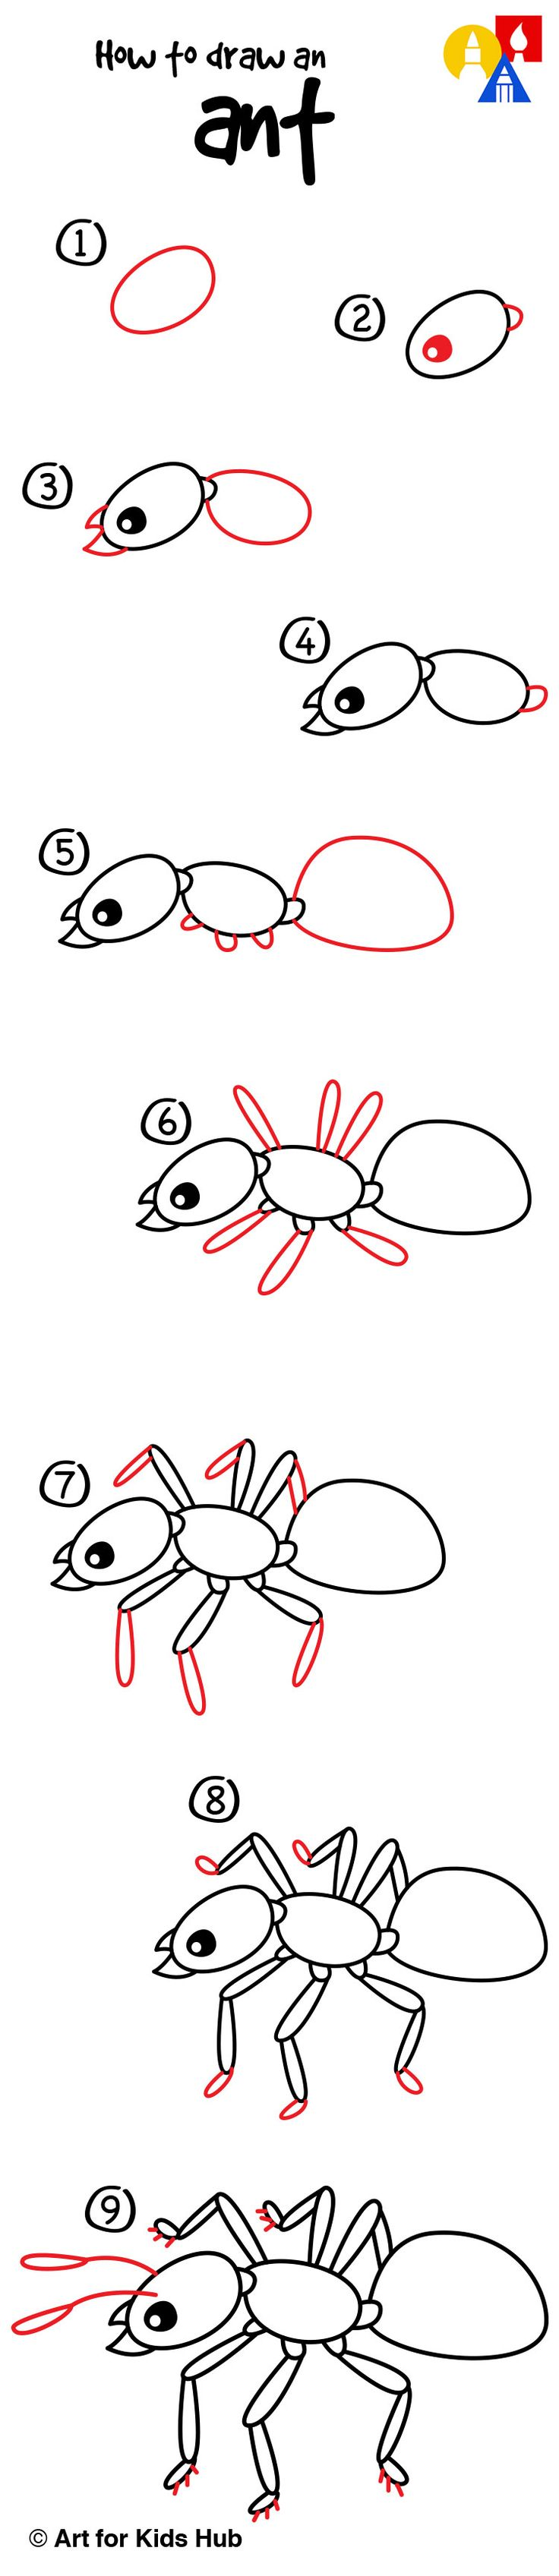 How to draw an ant!